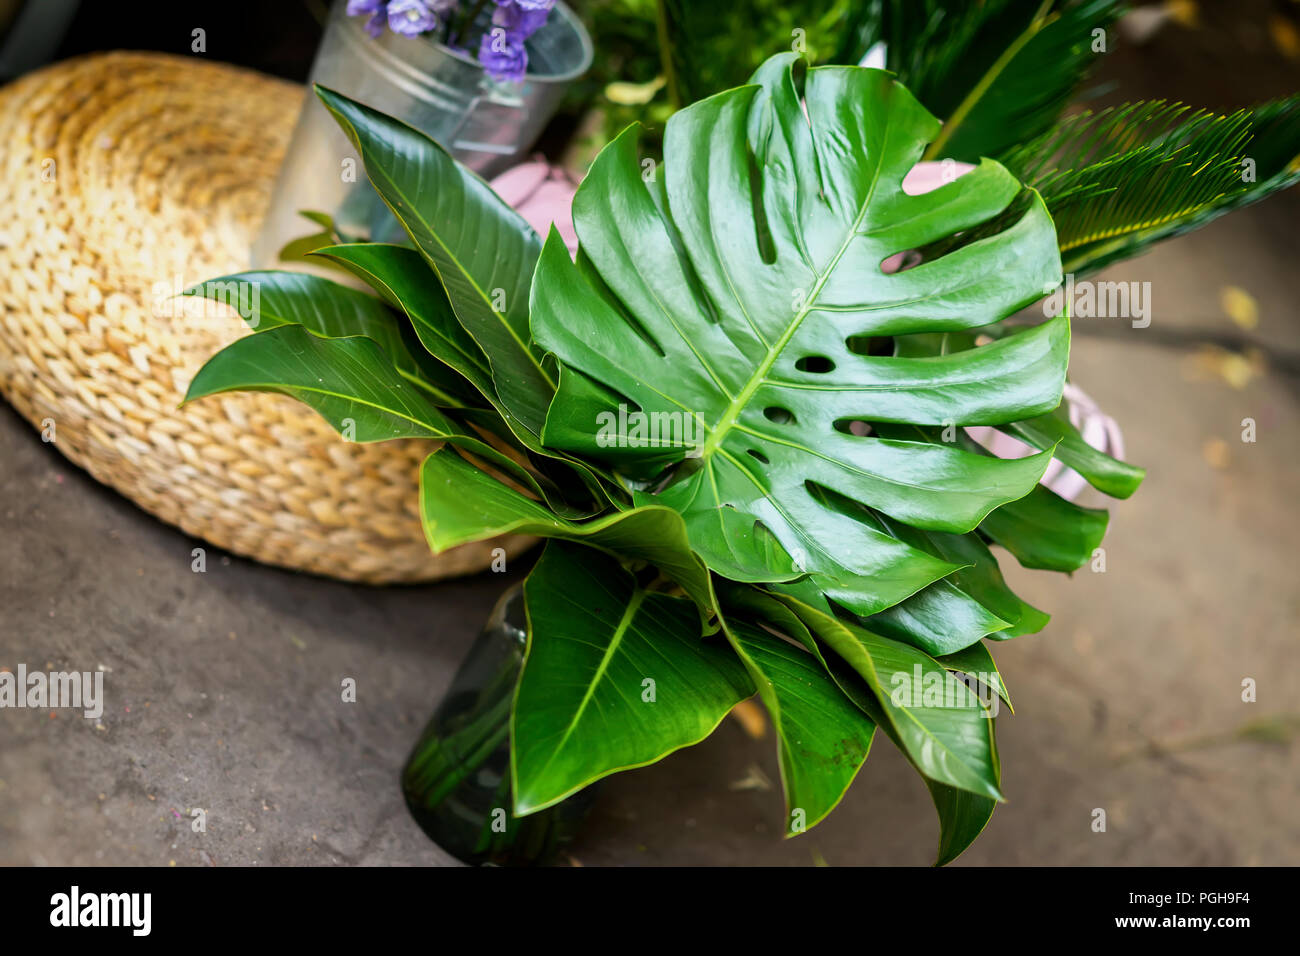 Bouquet of fresh monstera, green tropical leaves in glass vase, diagonal background - Stock Image